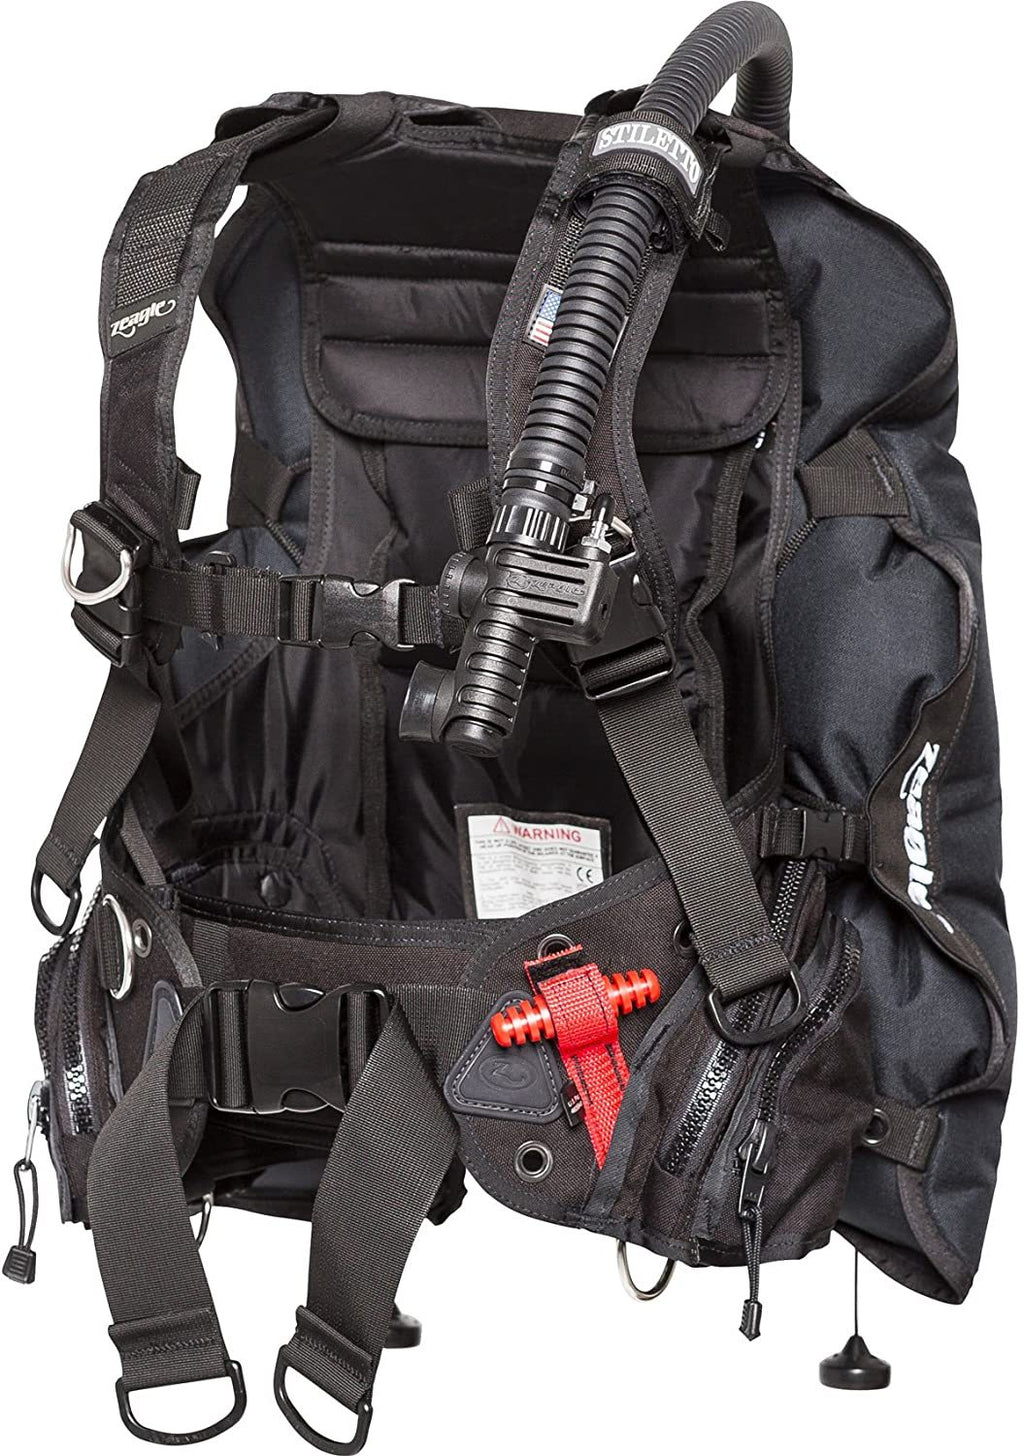 Zeagle Stiletto BCD with The Ripcord Weight System, Black, Medium